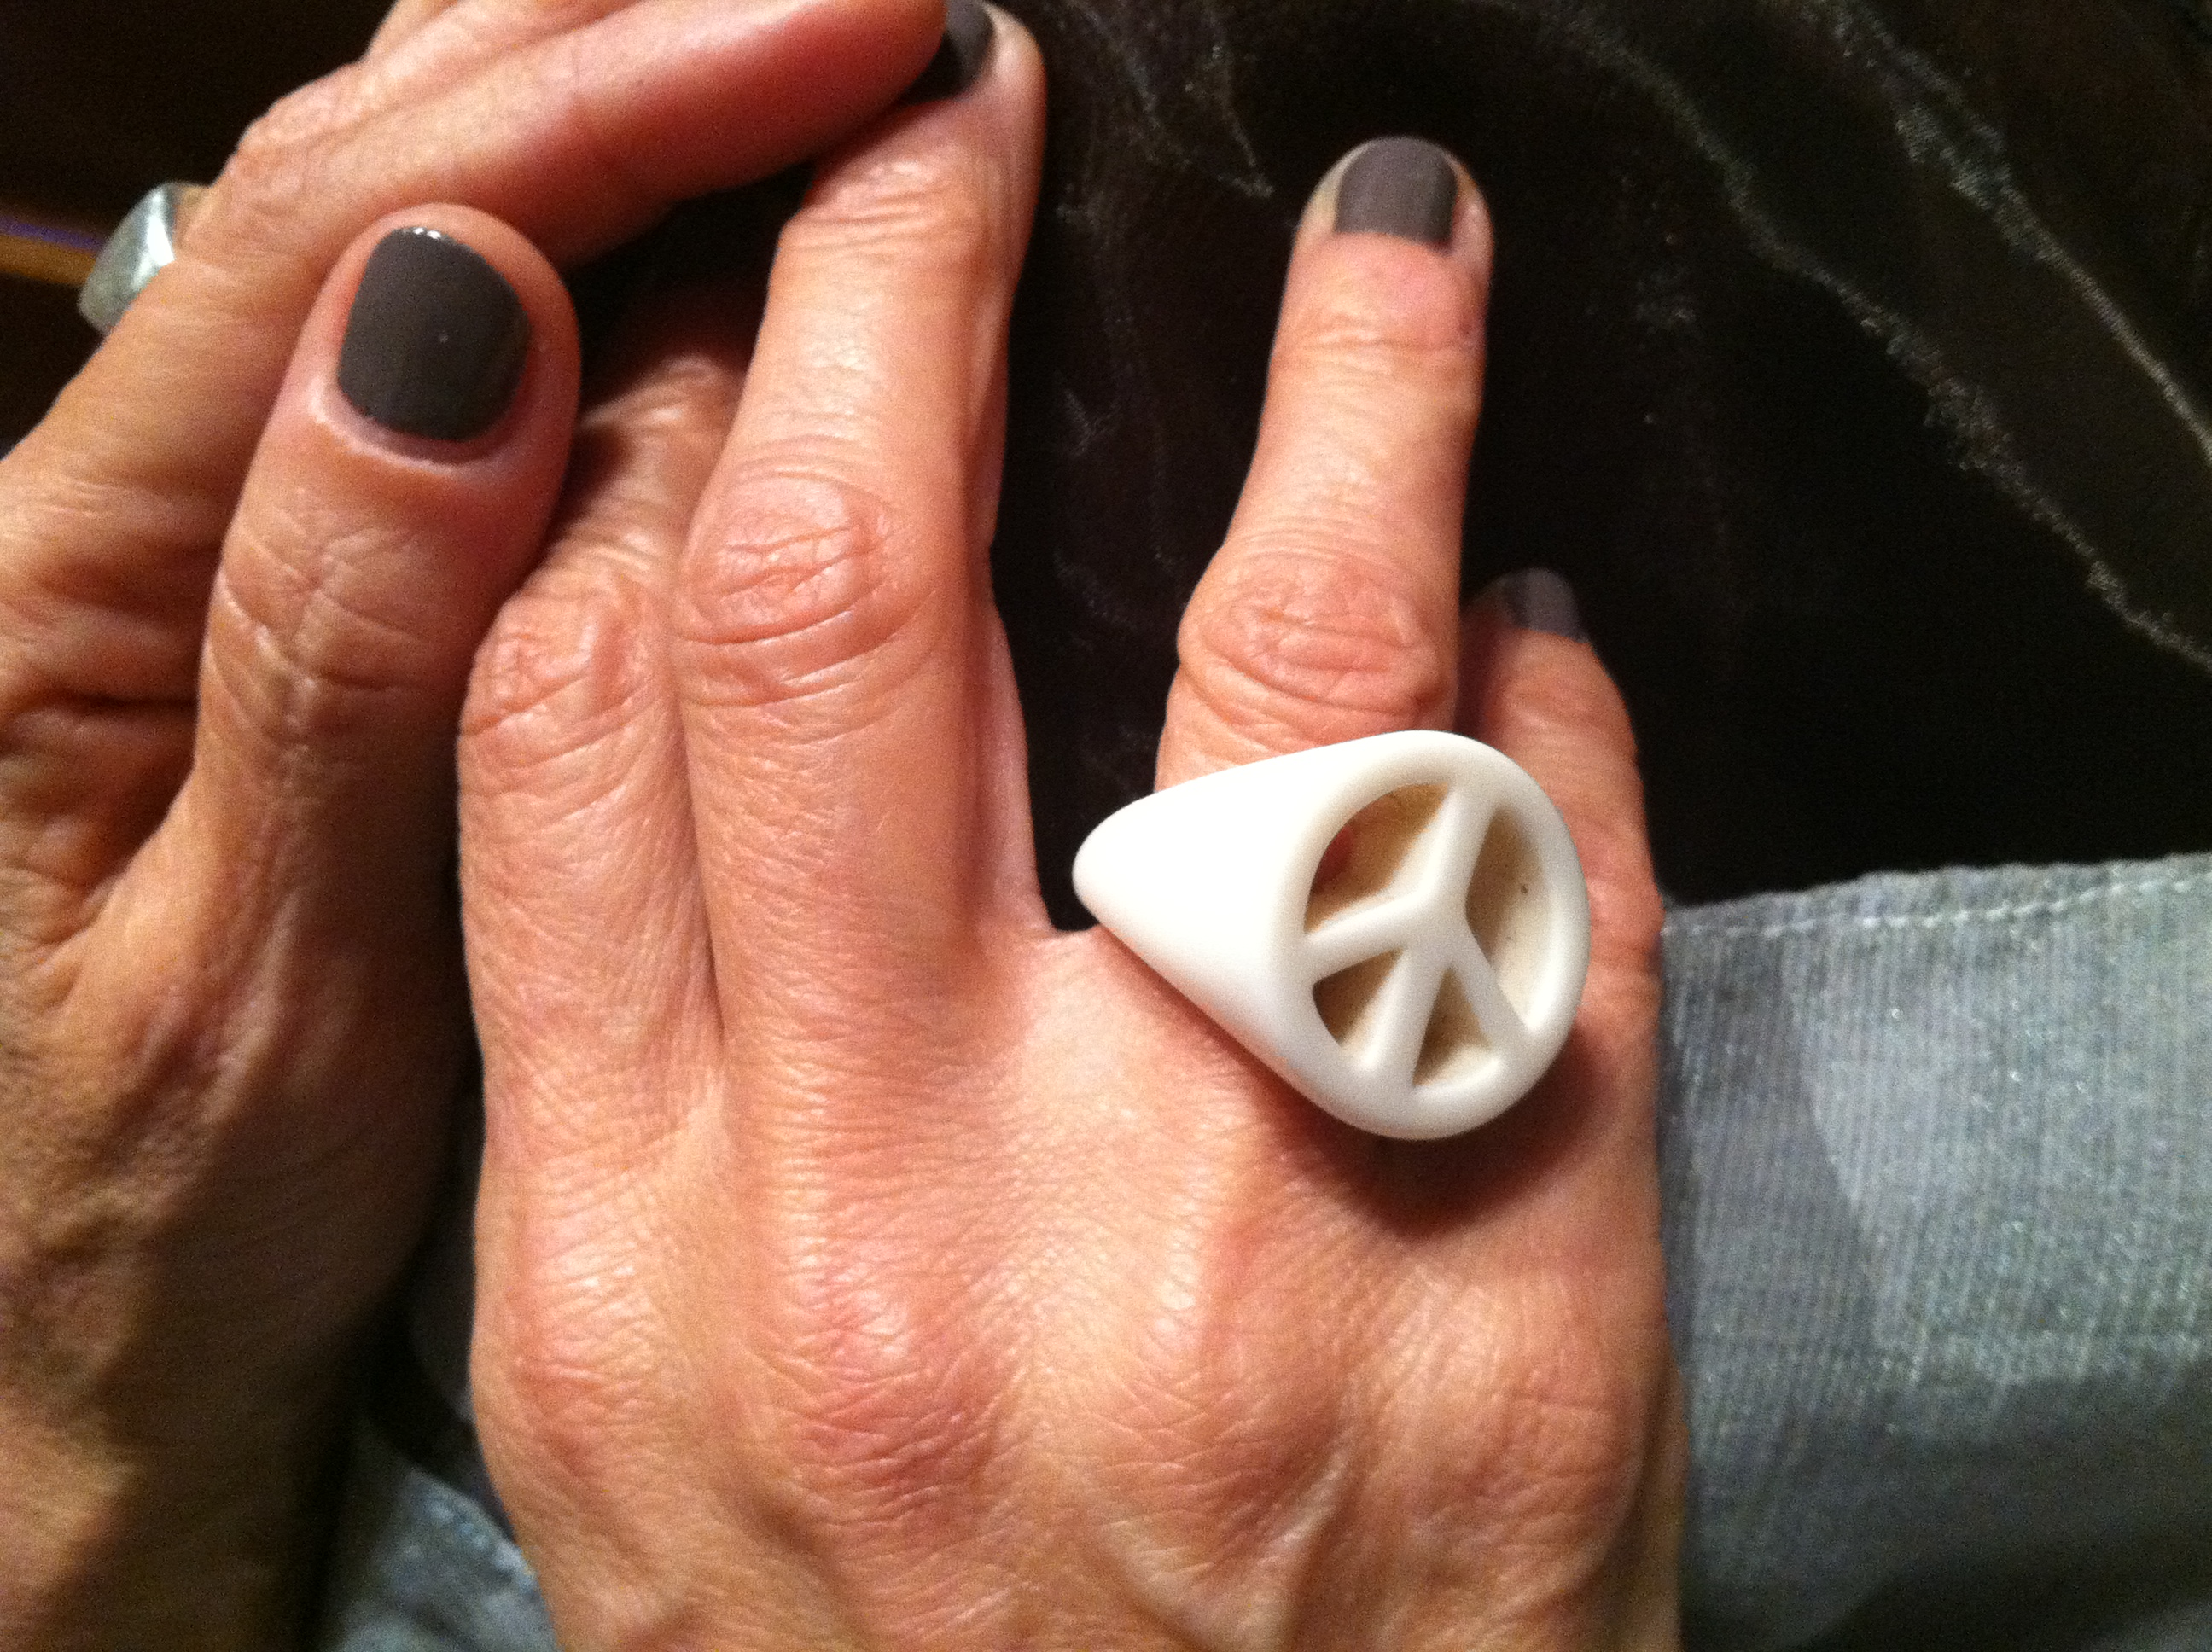 Jill's hands in lap wearing dark nail polish wearing her white peace sign ring